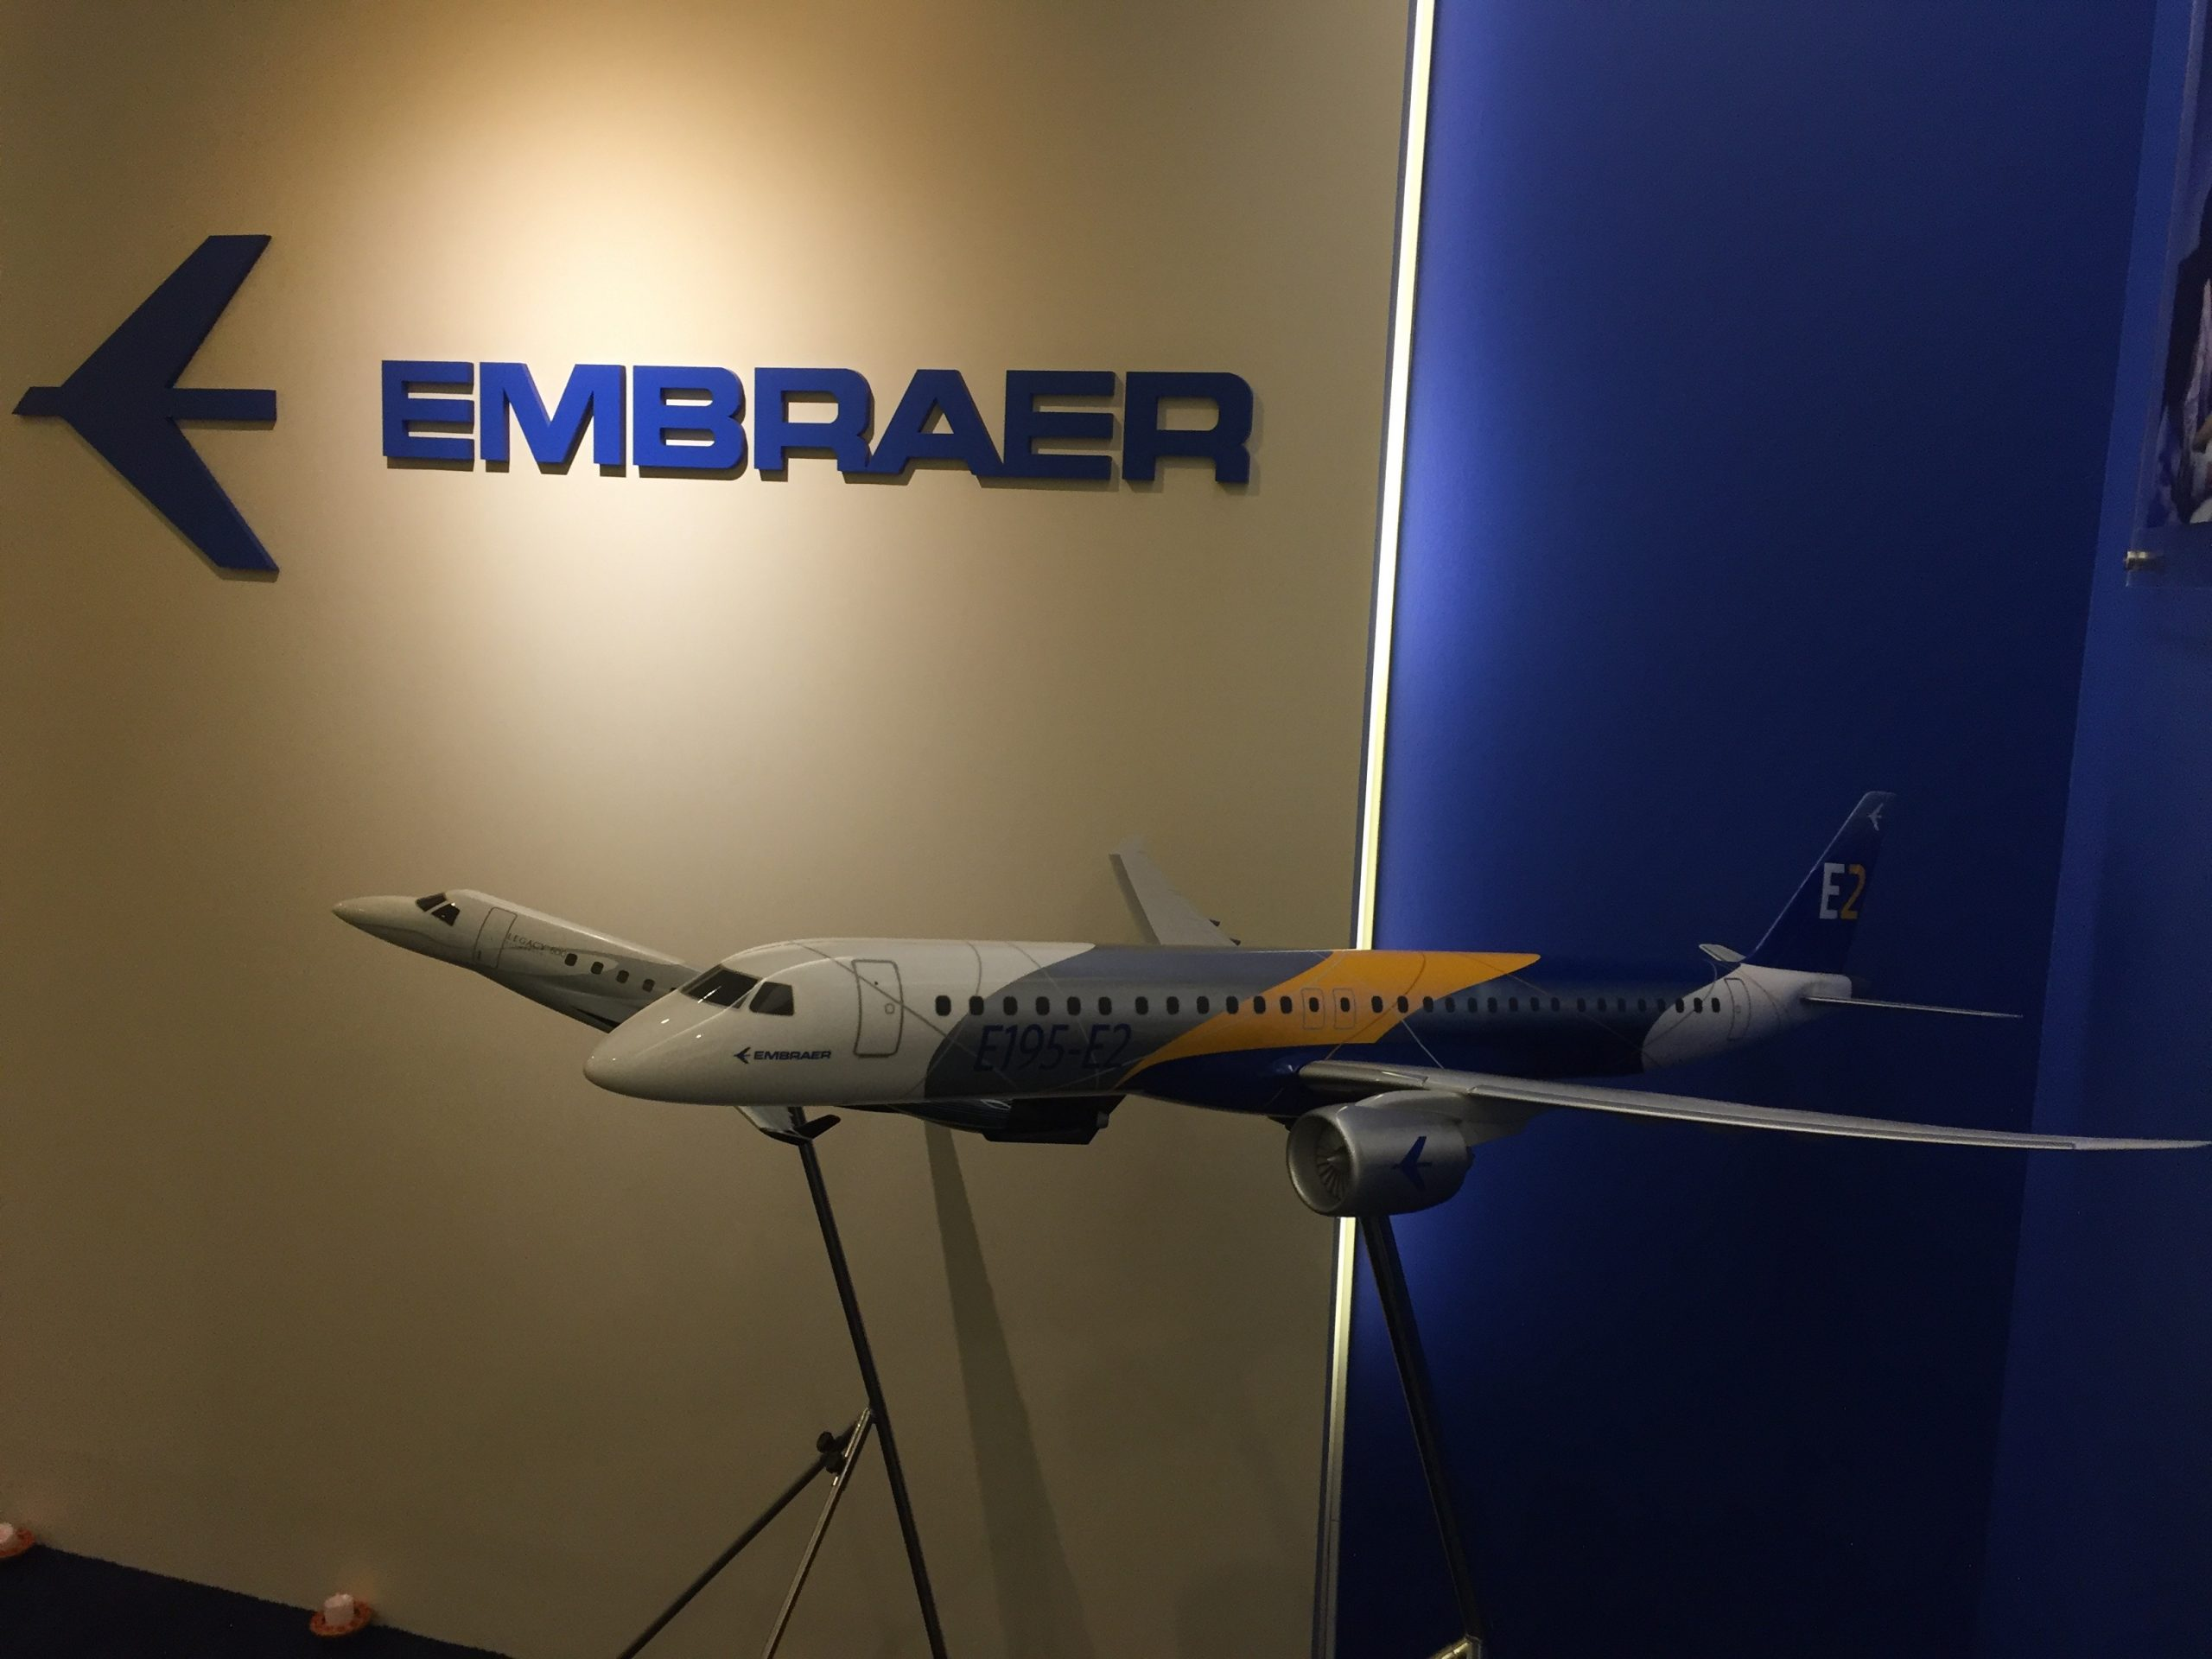 Boeing said good bye to Embraer. Part 1